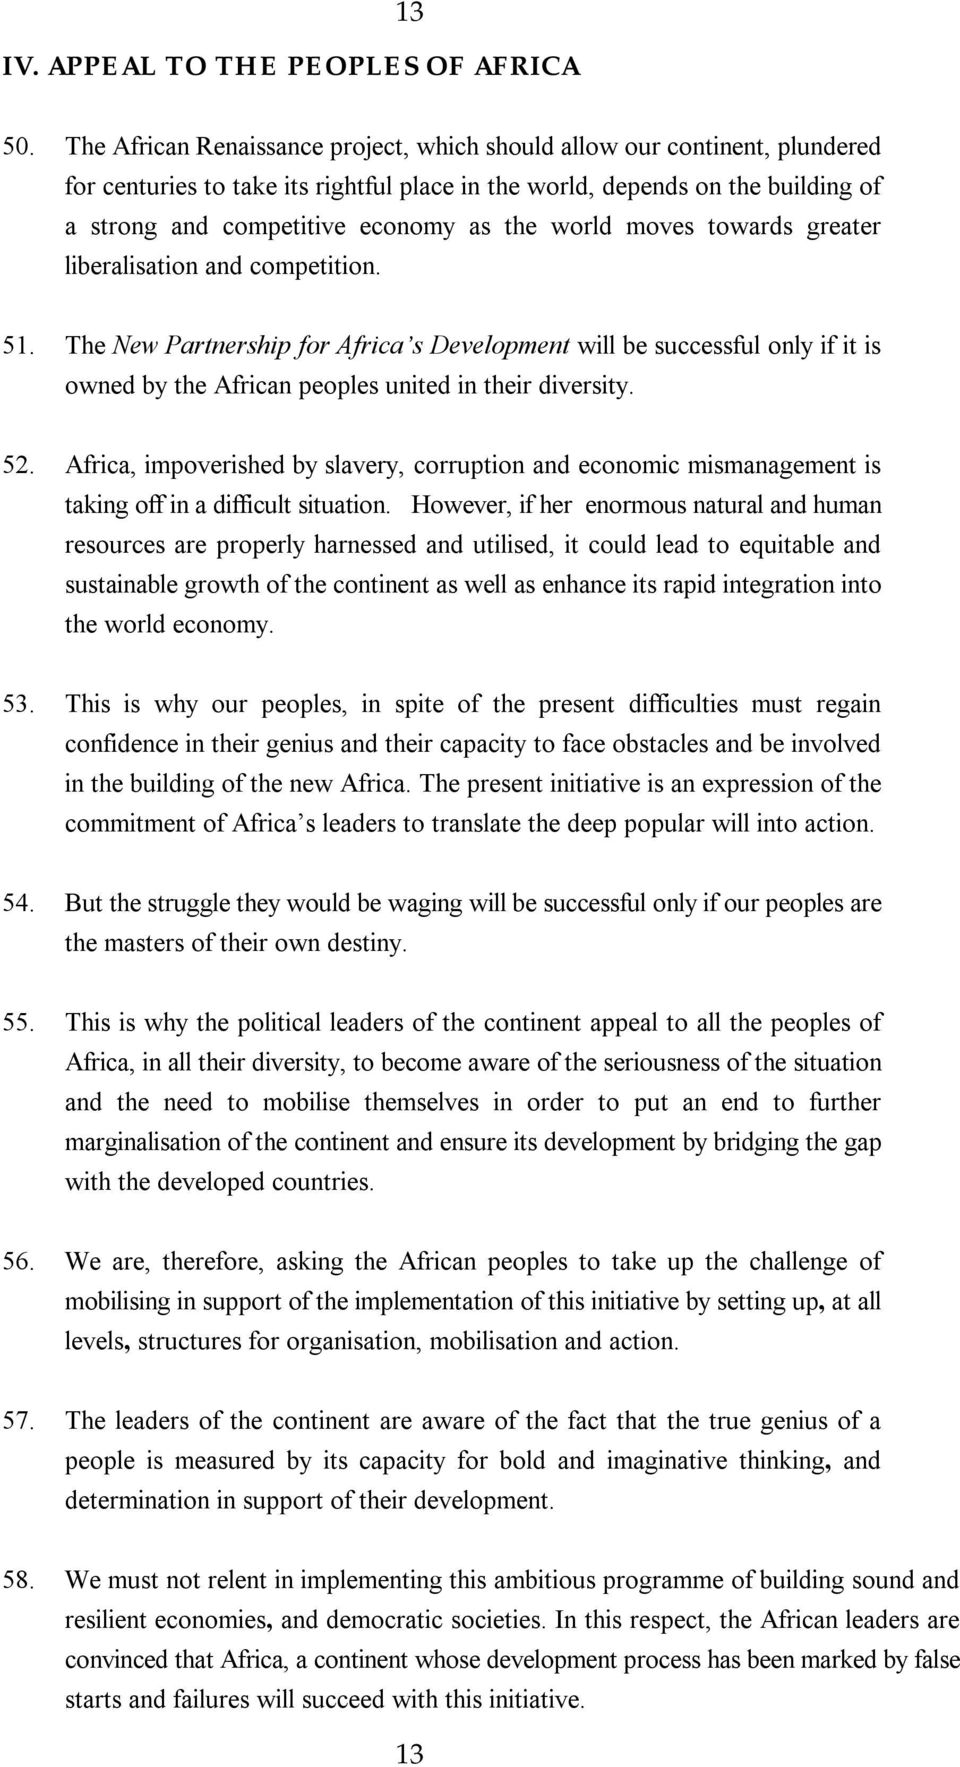 world moves towards greater liberalisation and competition. 51. The New Partnership for Africa s Development will be successful only if it is owned by the African peoples united in their diversity.